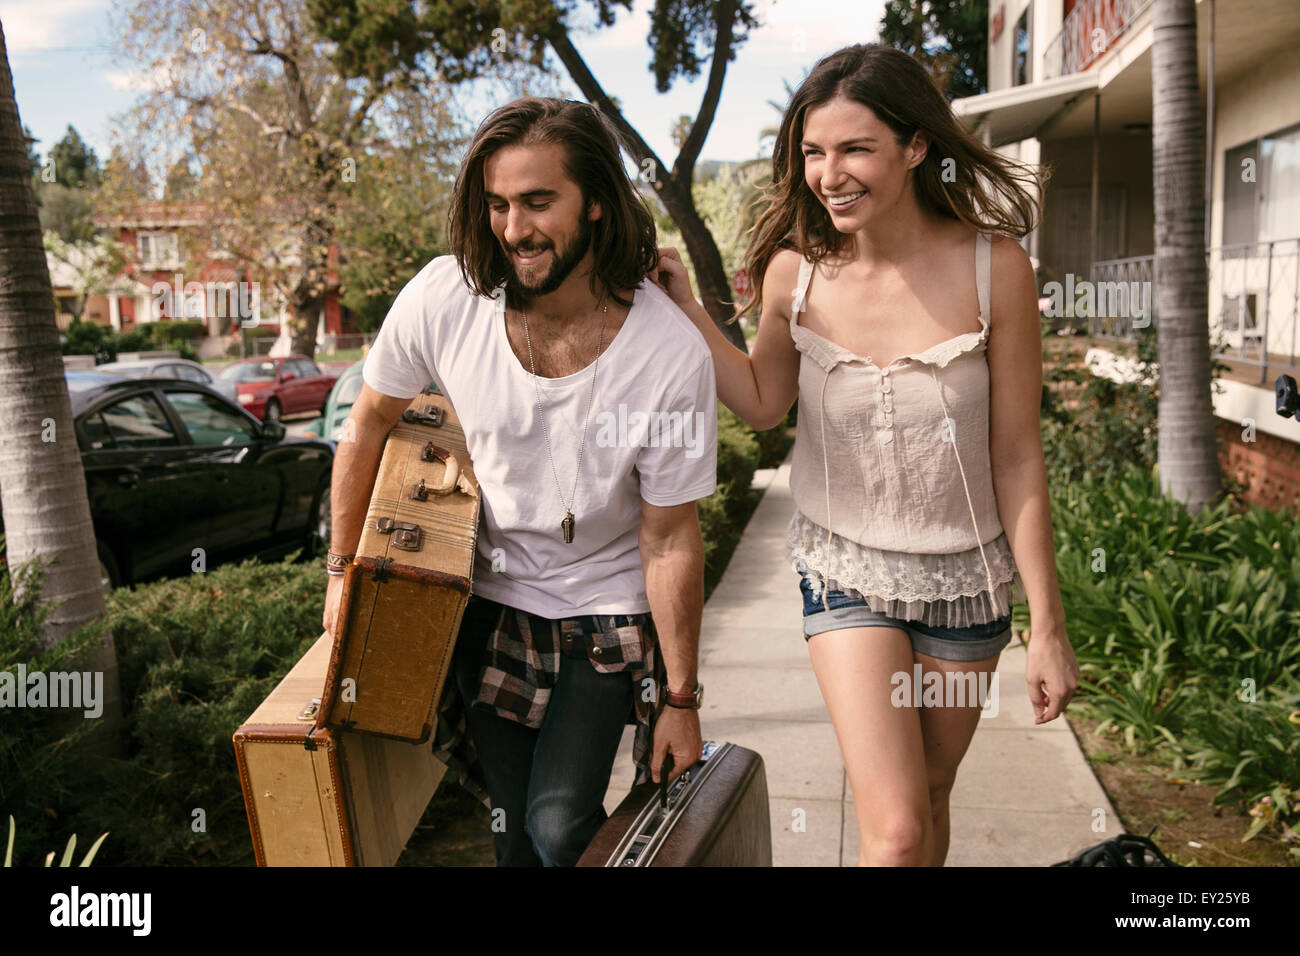 Young couple struggling to carry suitcases for road trip - Stock Image